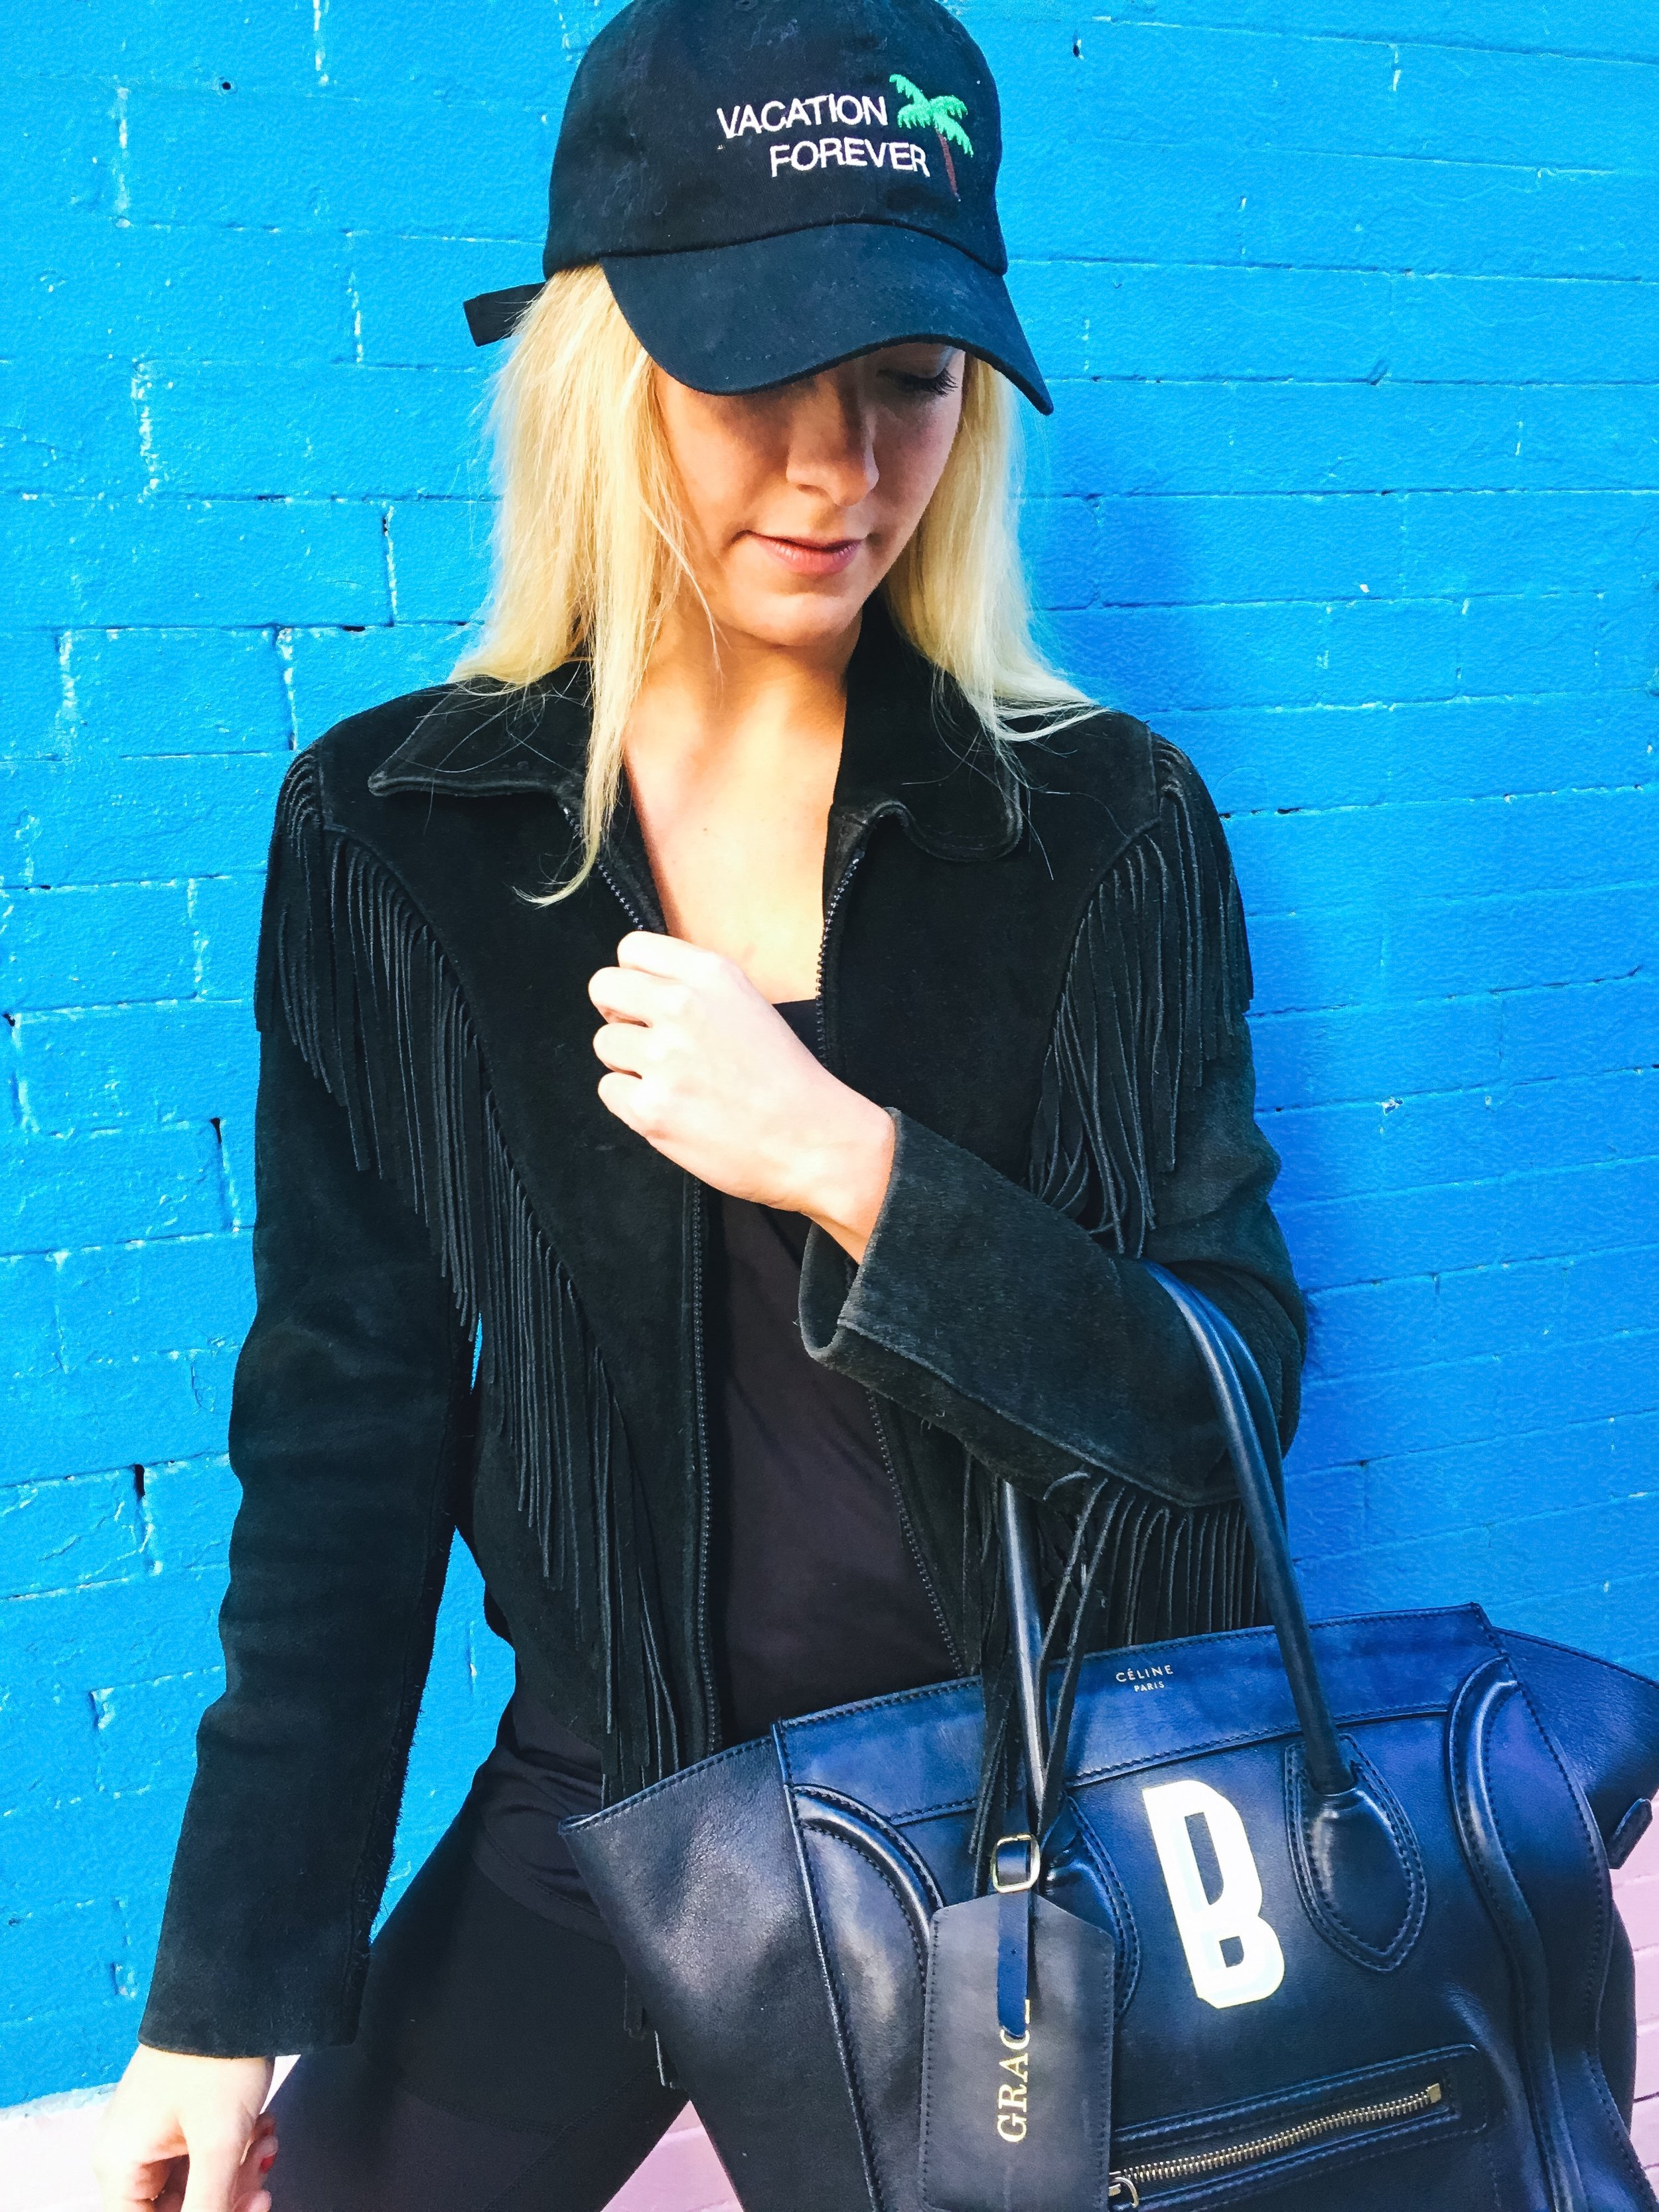 Jacket: The Vintage Twin. Top: The Athleisure Company. Pants: Alo Yoga. Bag: Céline. Luggage Tag: Royce New York. Hat: Red's Outfitters. Patch Sticker: KITSCH.